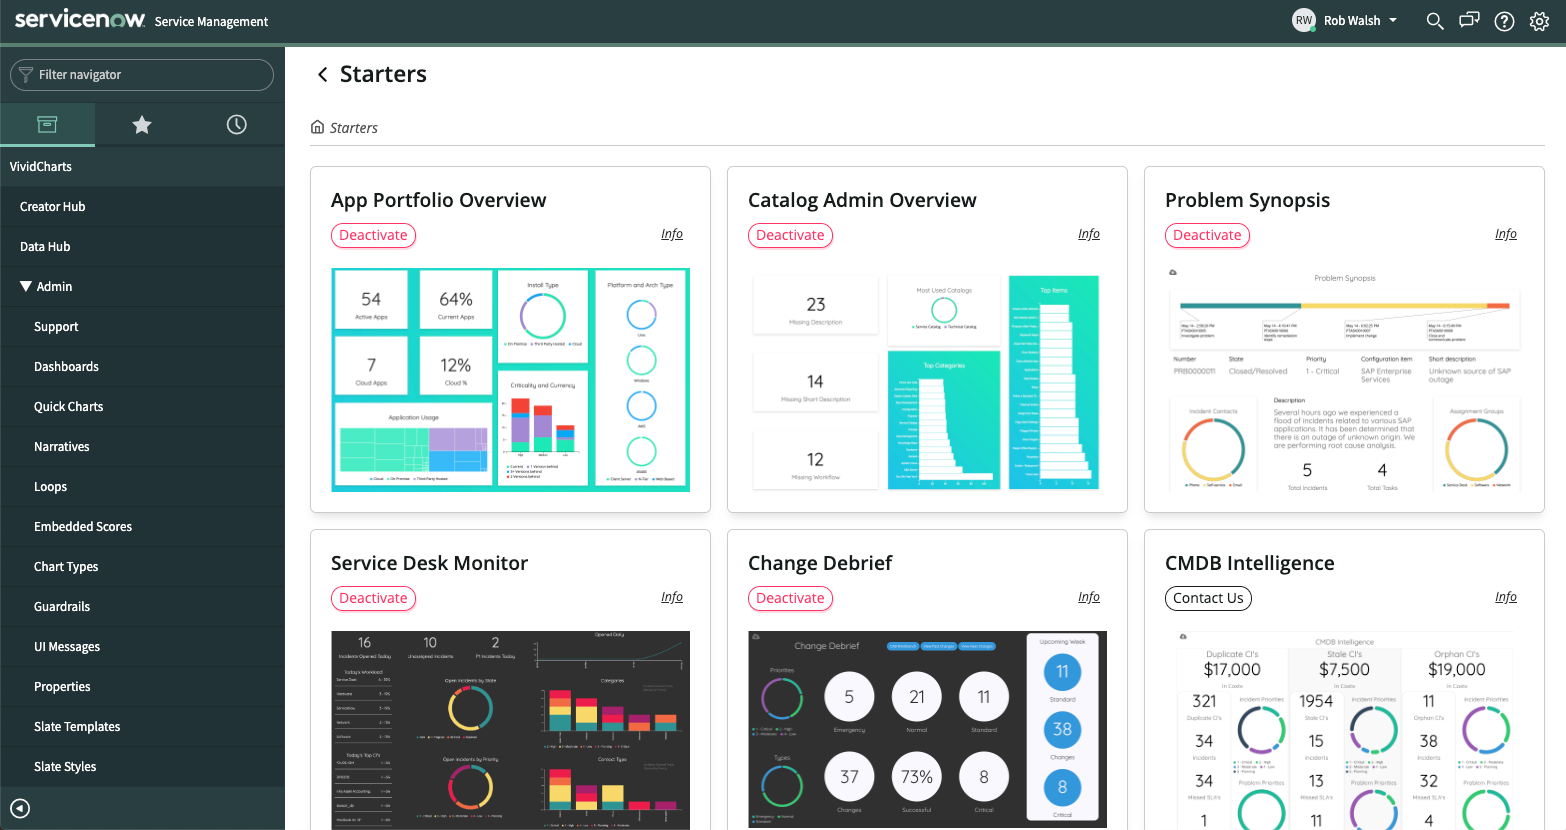 vividcharts out of the box starters servicenow app